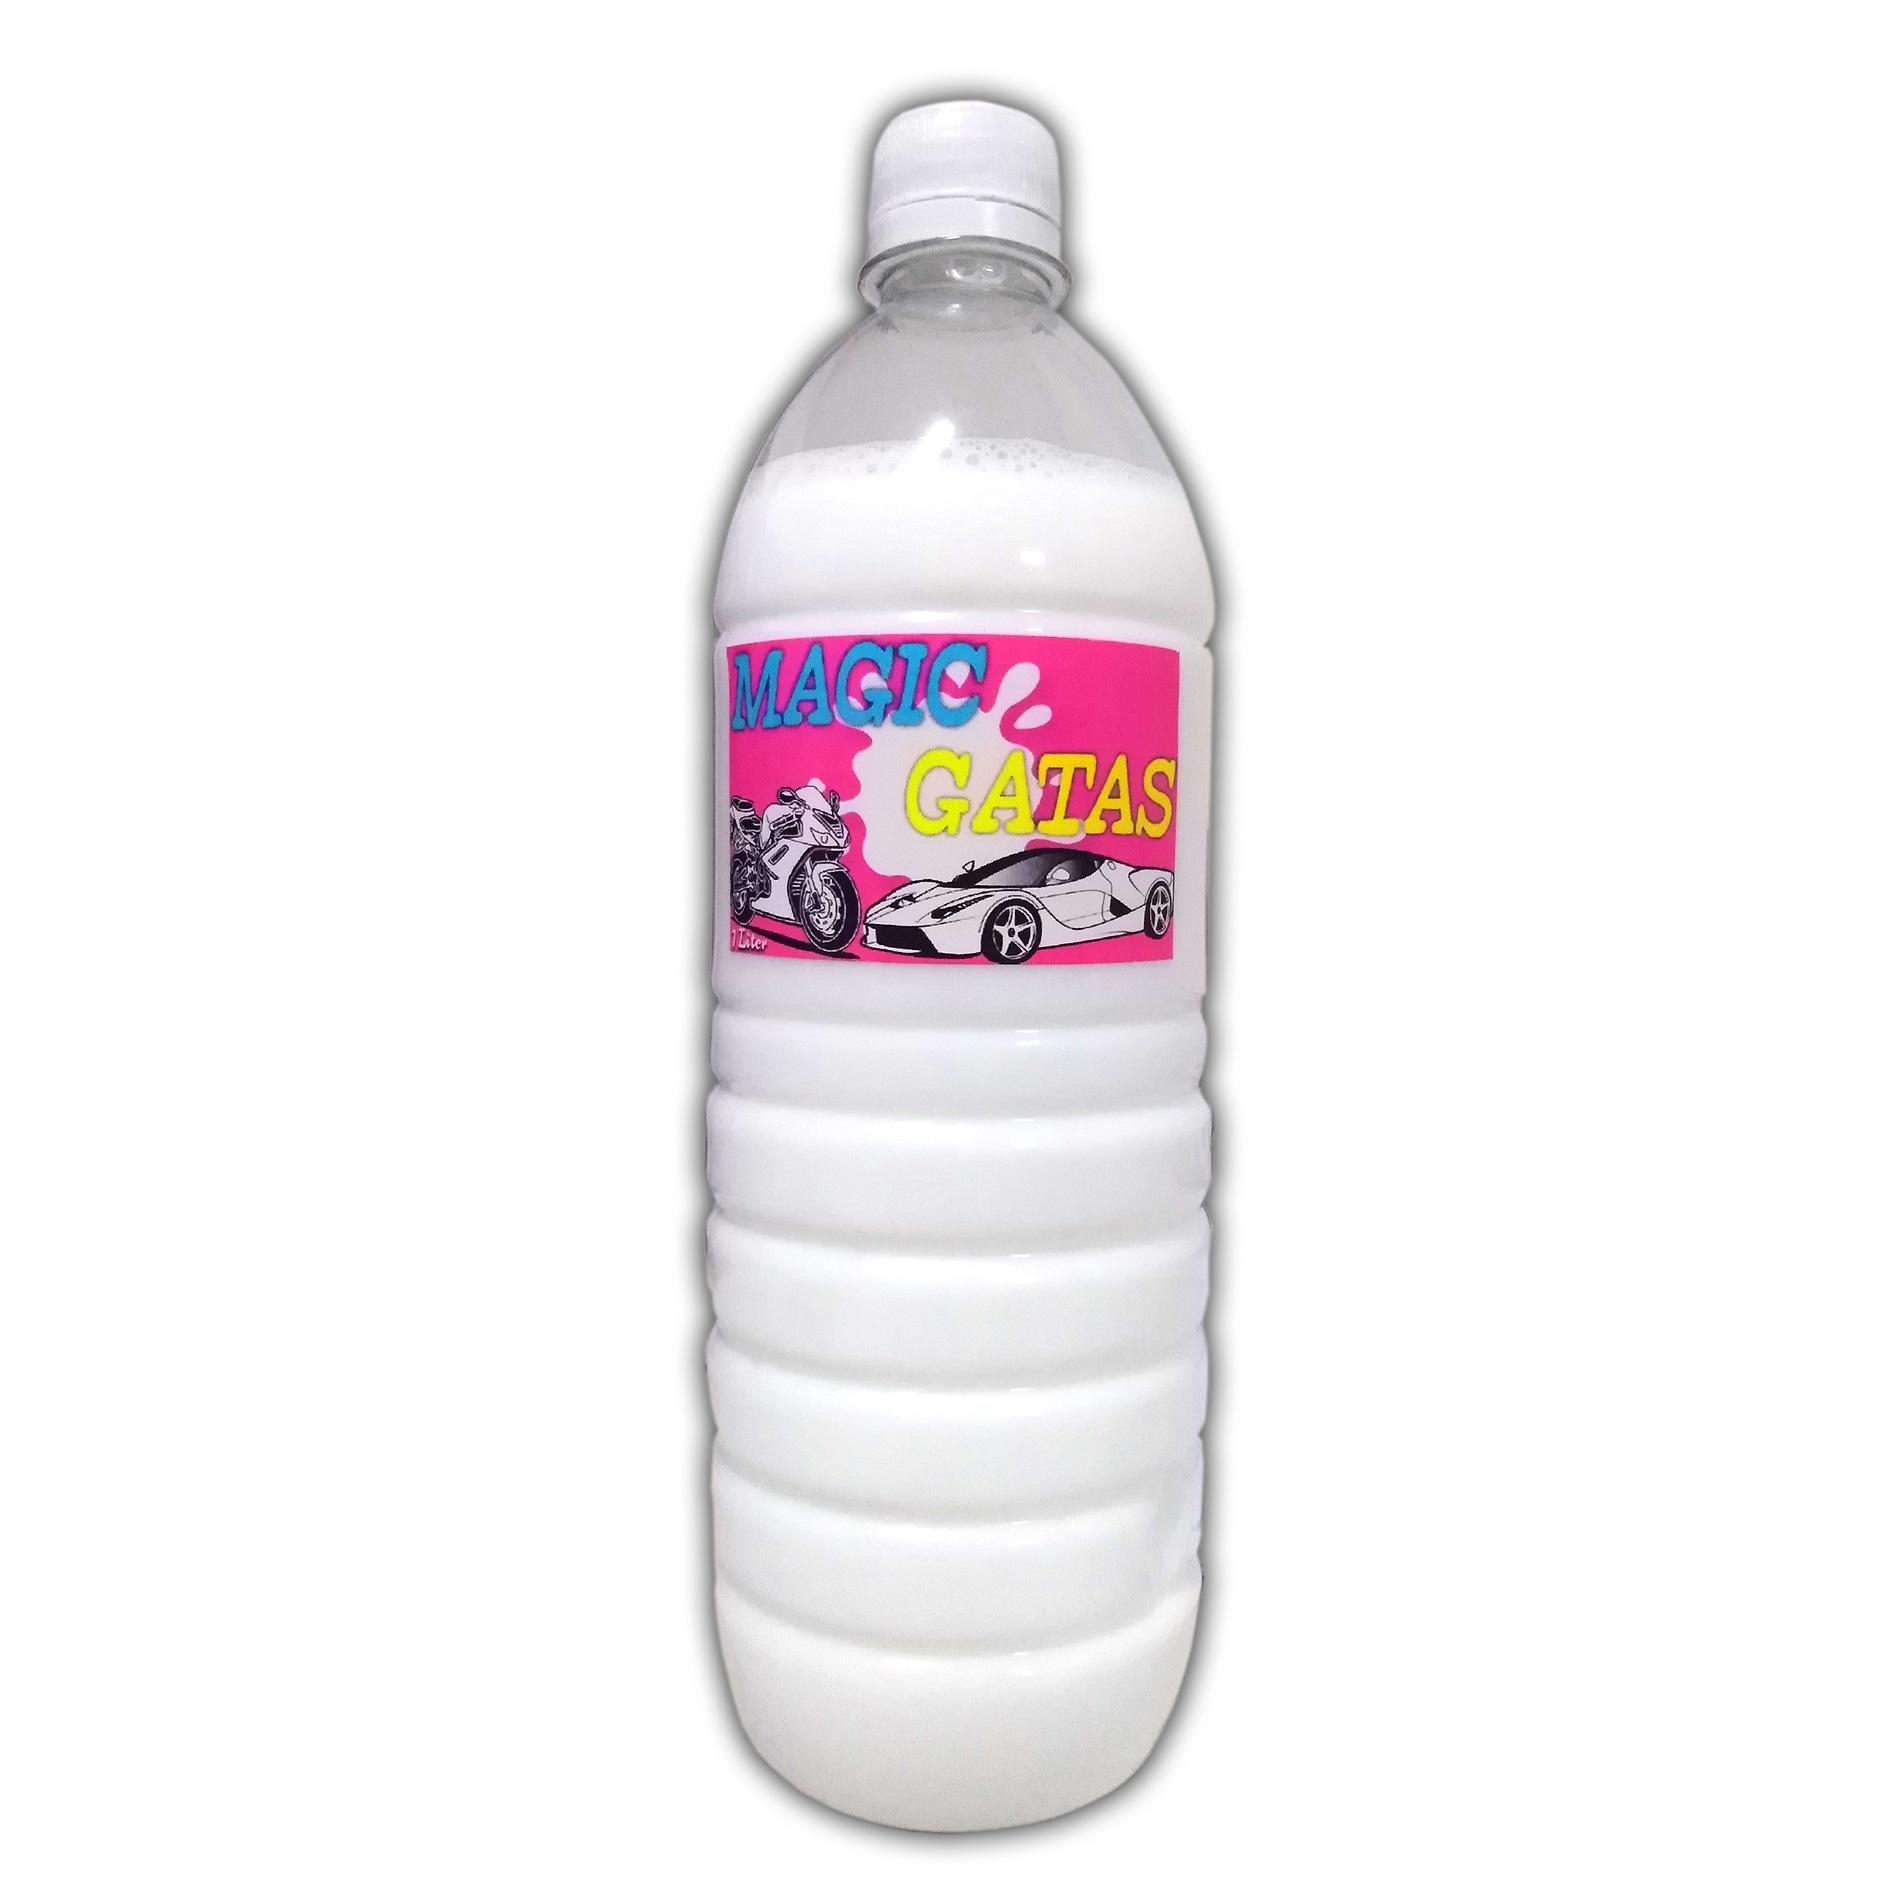 Magic Gatas (1 Liter) 199php On Sale By The Origin.